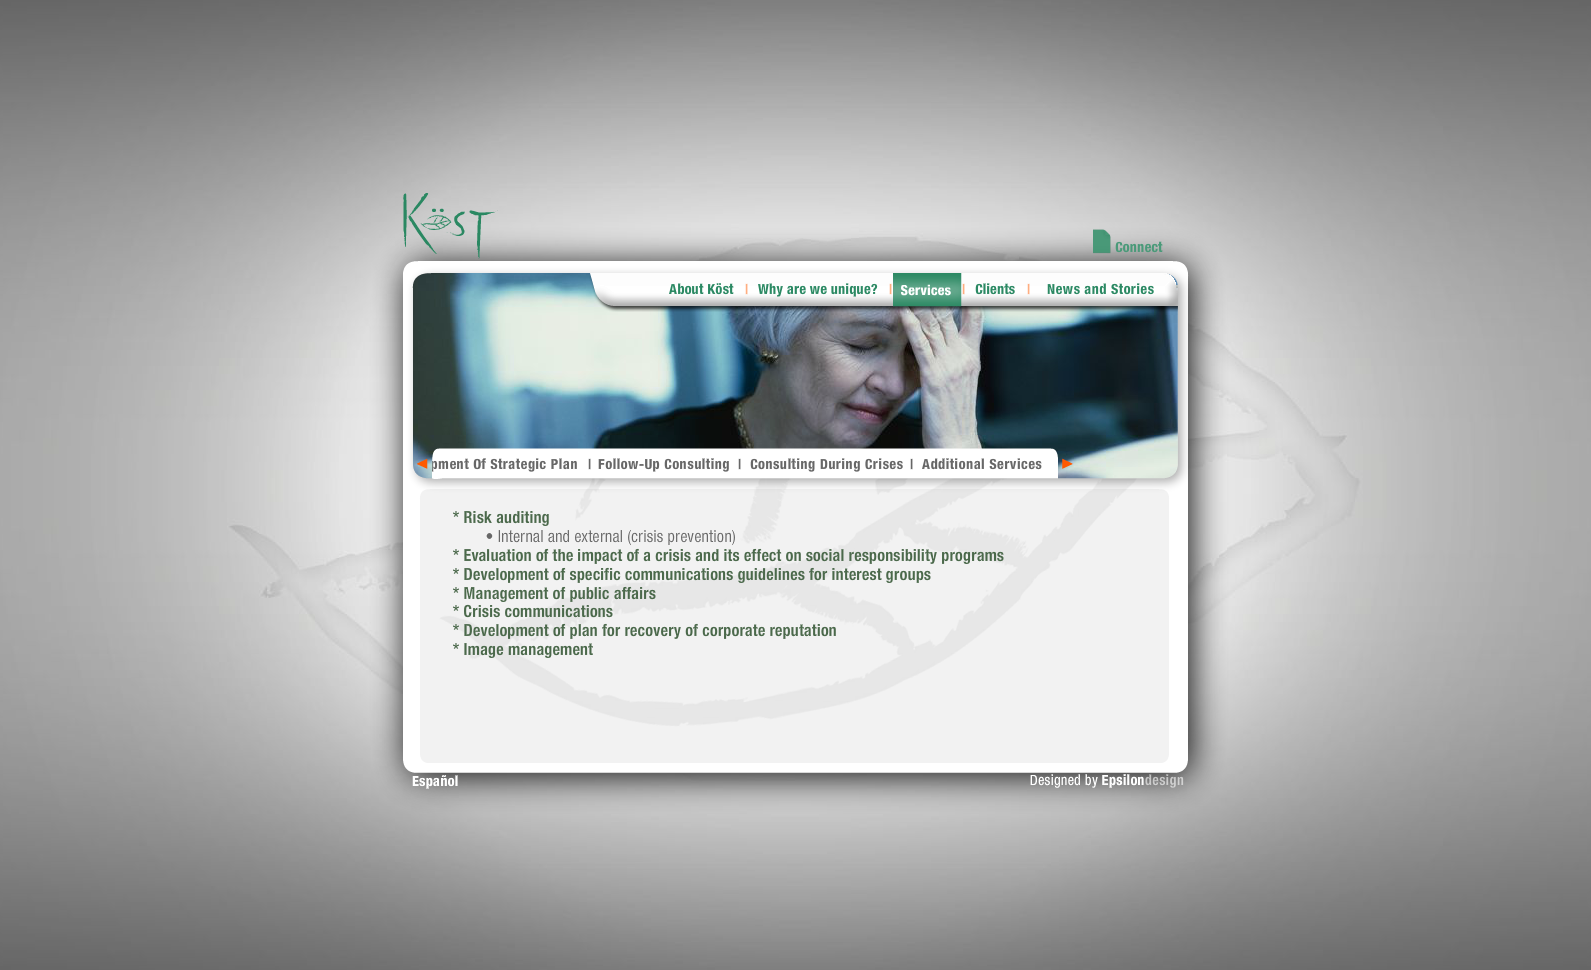 Green Kost - Services (Consulting during crises)